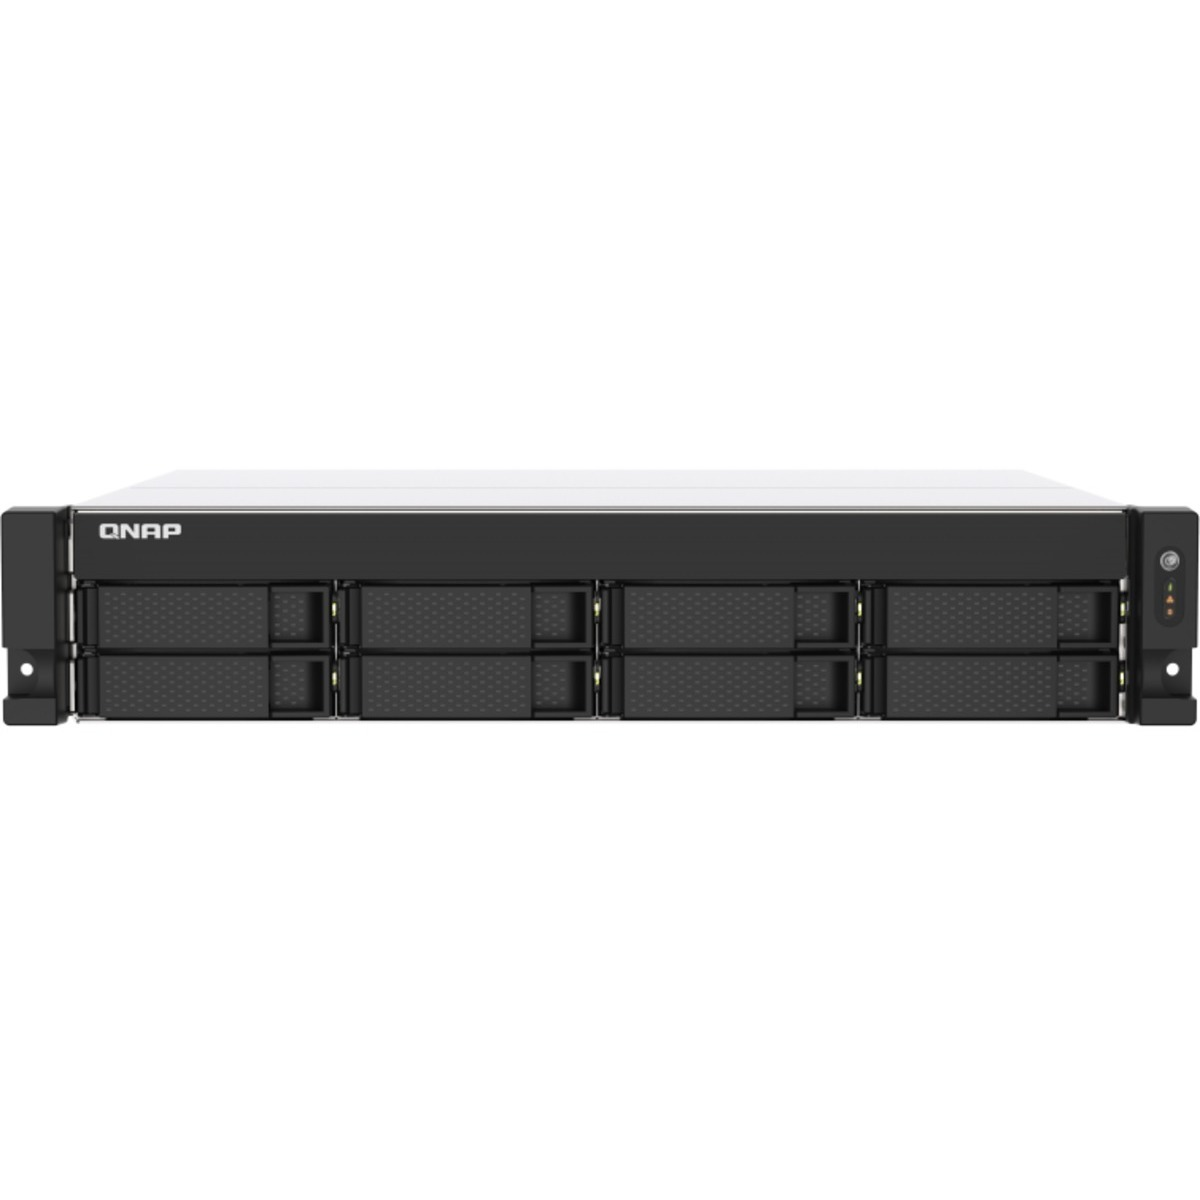 buy QNAP TS-873AU RackMount NAS - Network Attached Storage Device Burn-In Tested Configurations - FREE RAM UPGRADE - nas headquarters buy network attached storage server device das new raid-5 free shipping usa holiday new year clearance sale TS-873AU